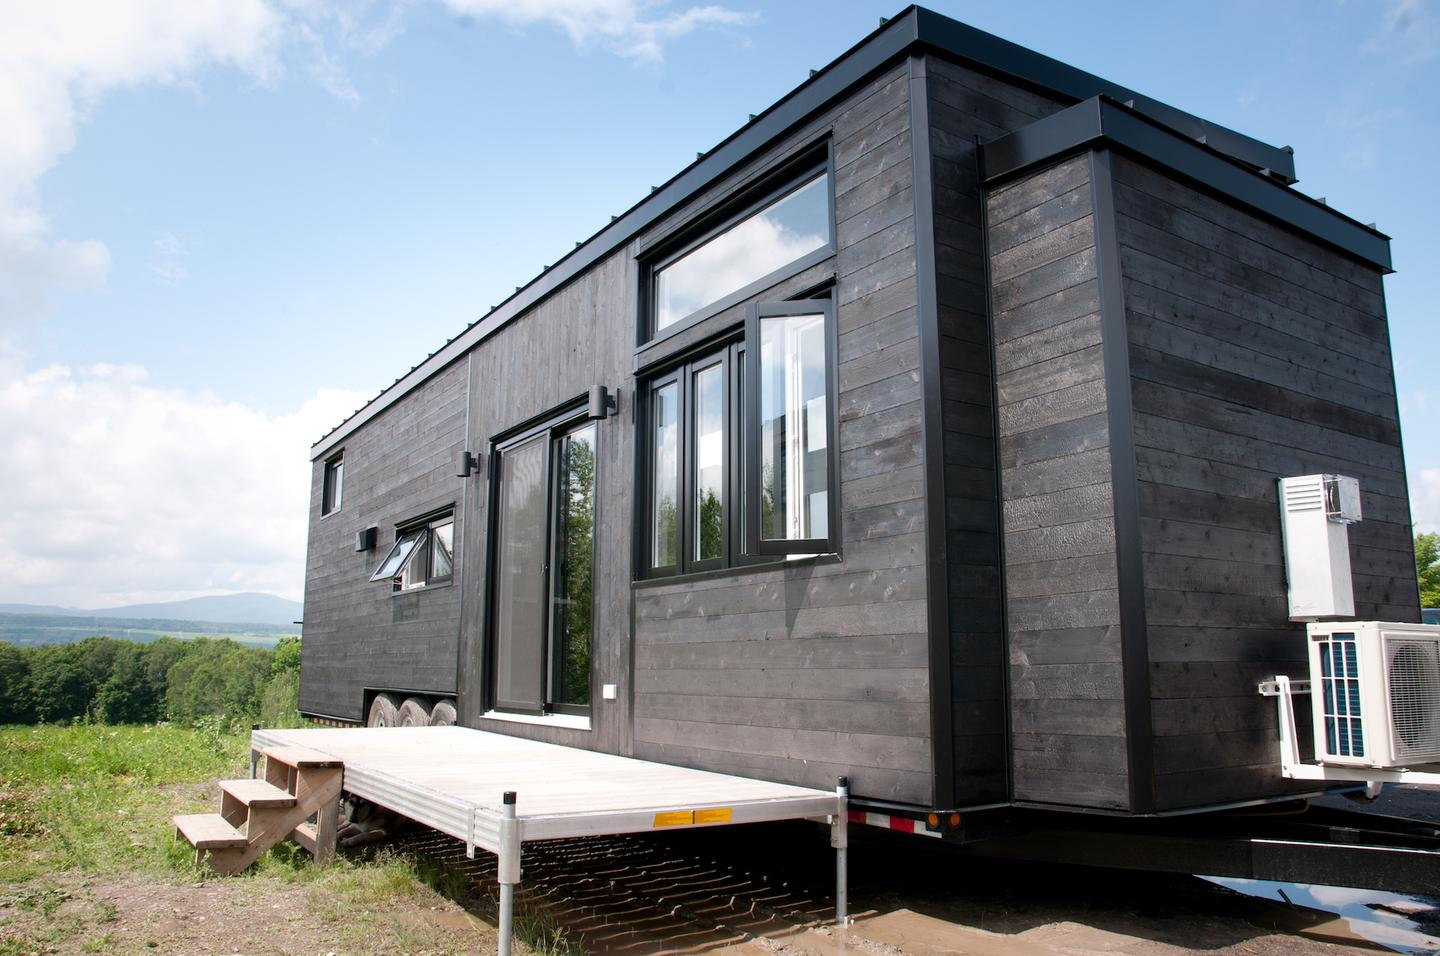 The Baobab tiny house is clad in wood that's been treated using the distinctive Japanese Shou Sugi Ban method of charring wood to preserve it